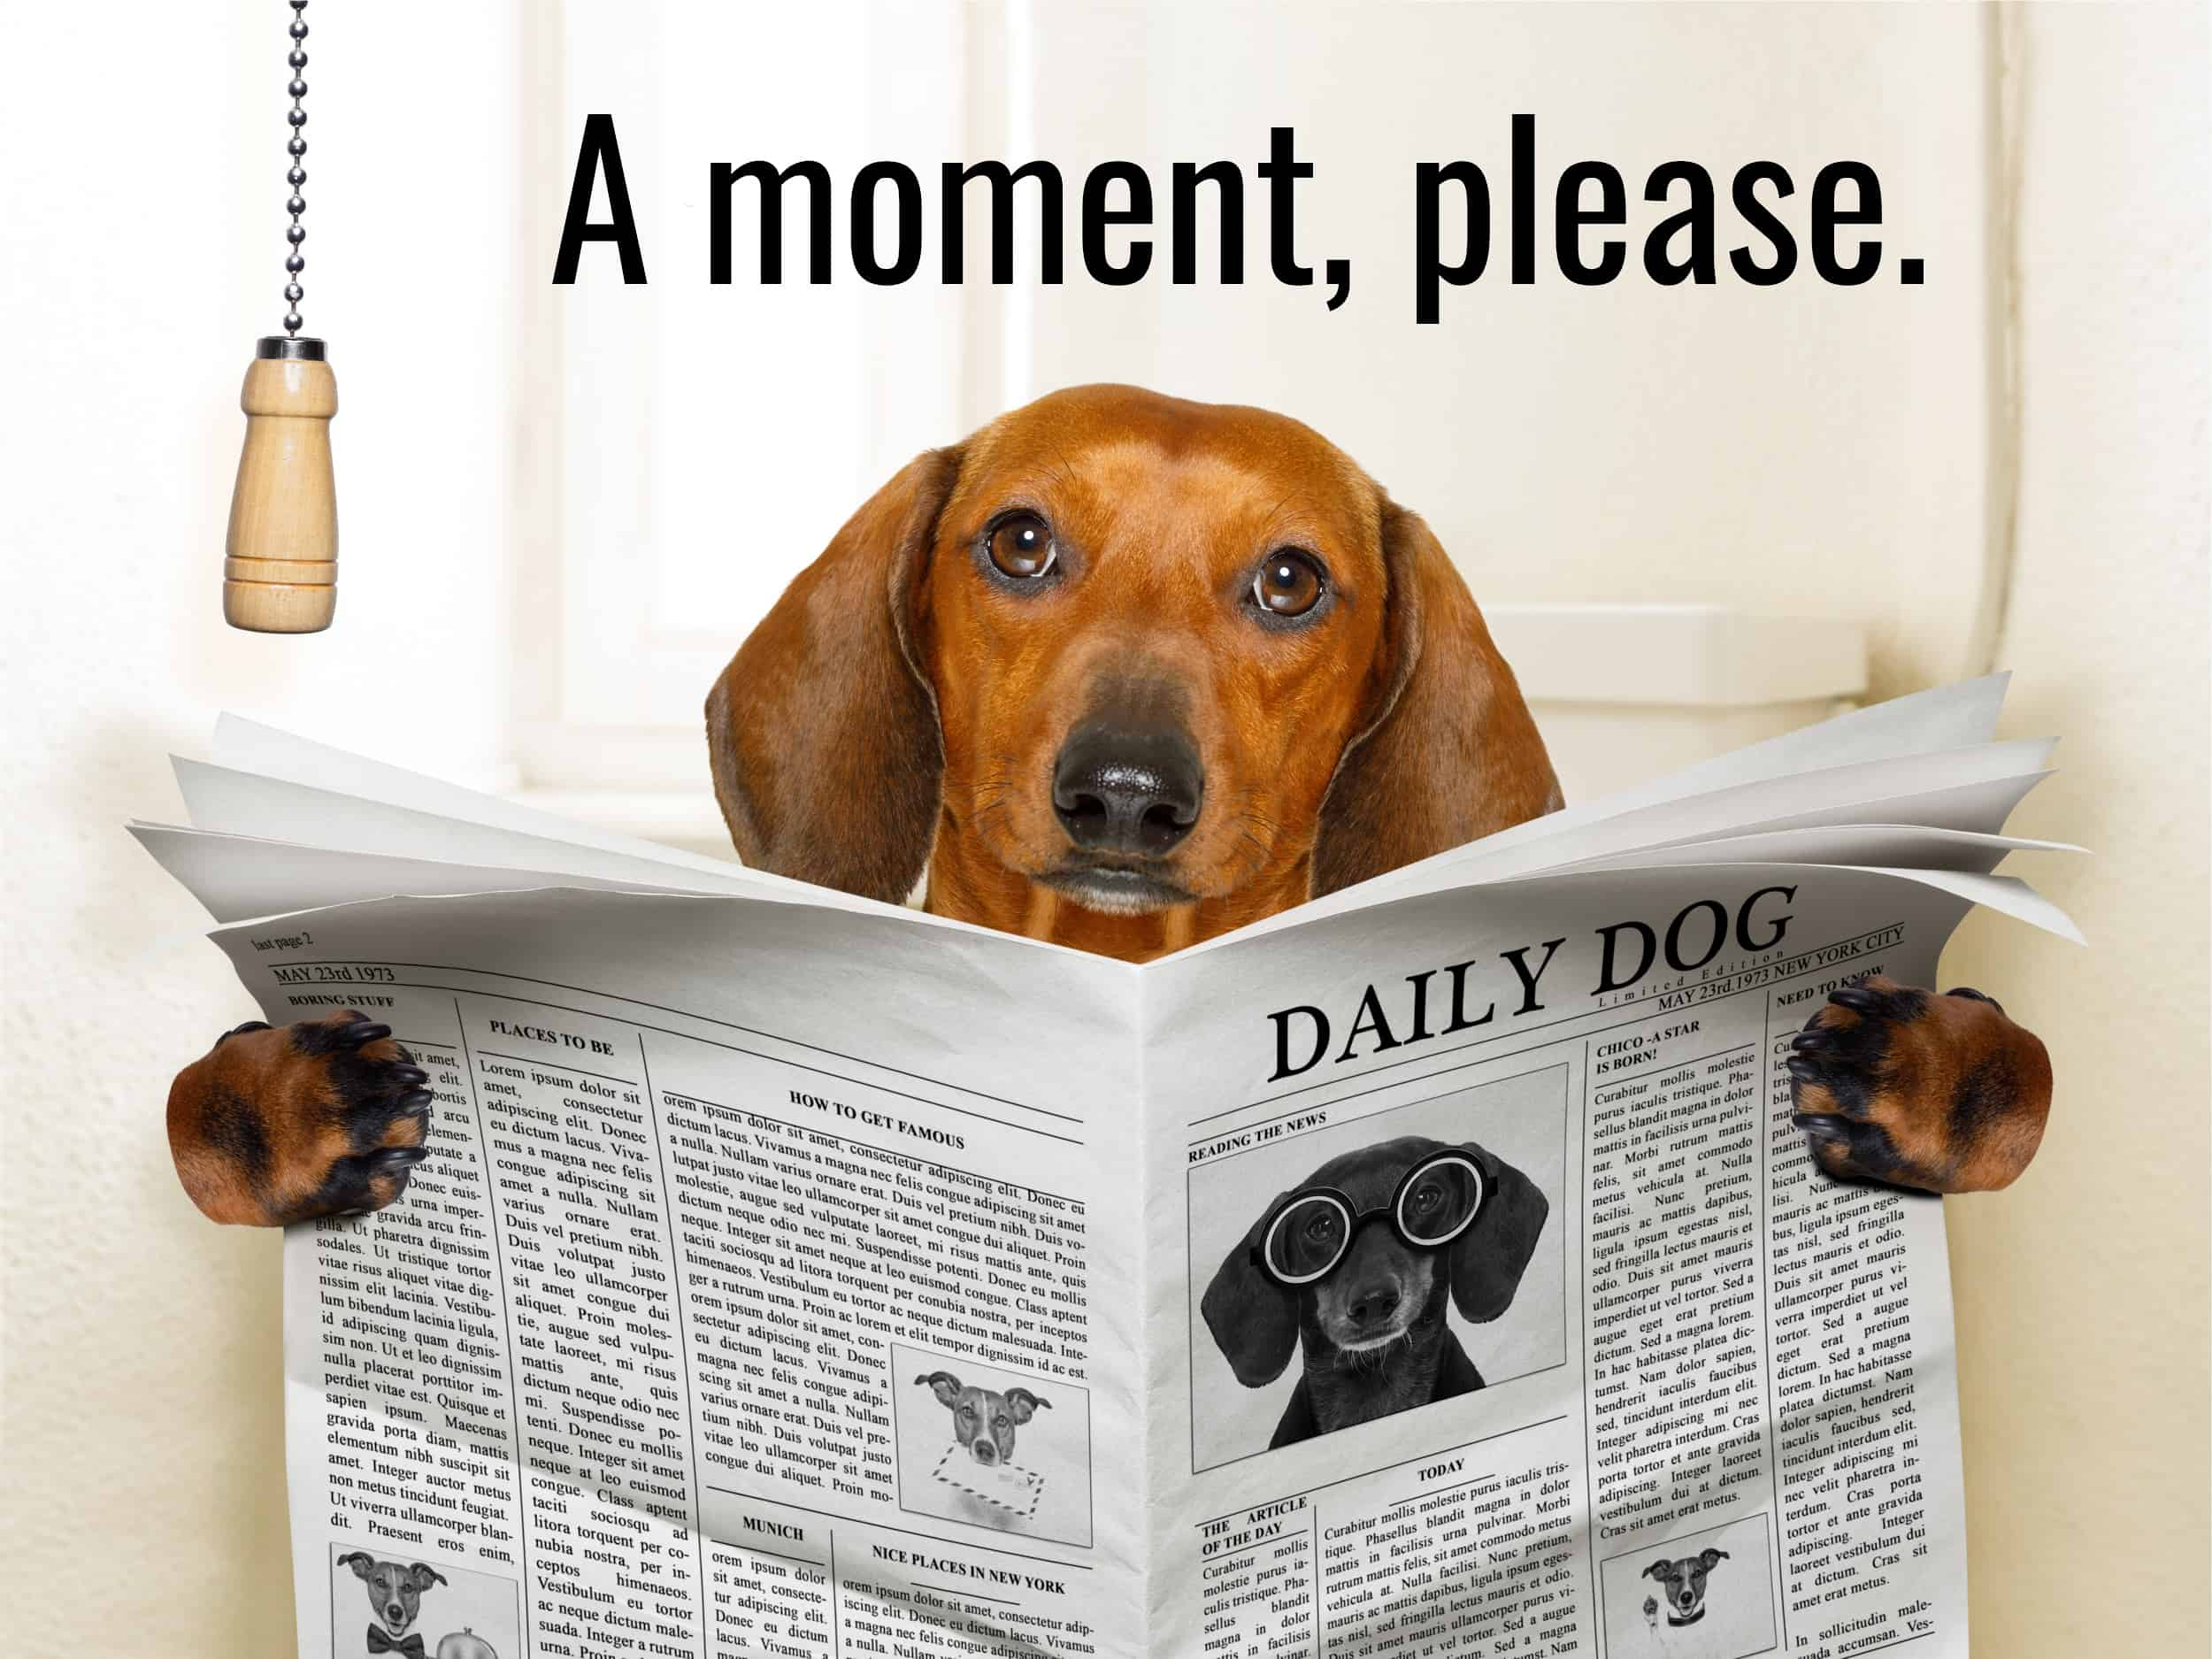 Dog sitting on toilet reading newspaper